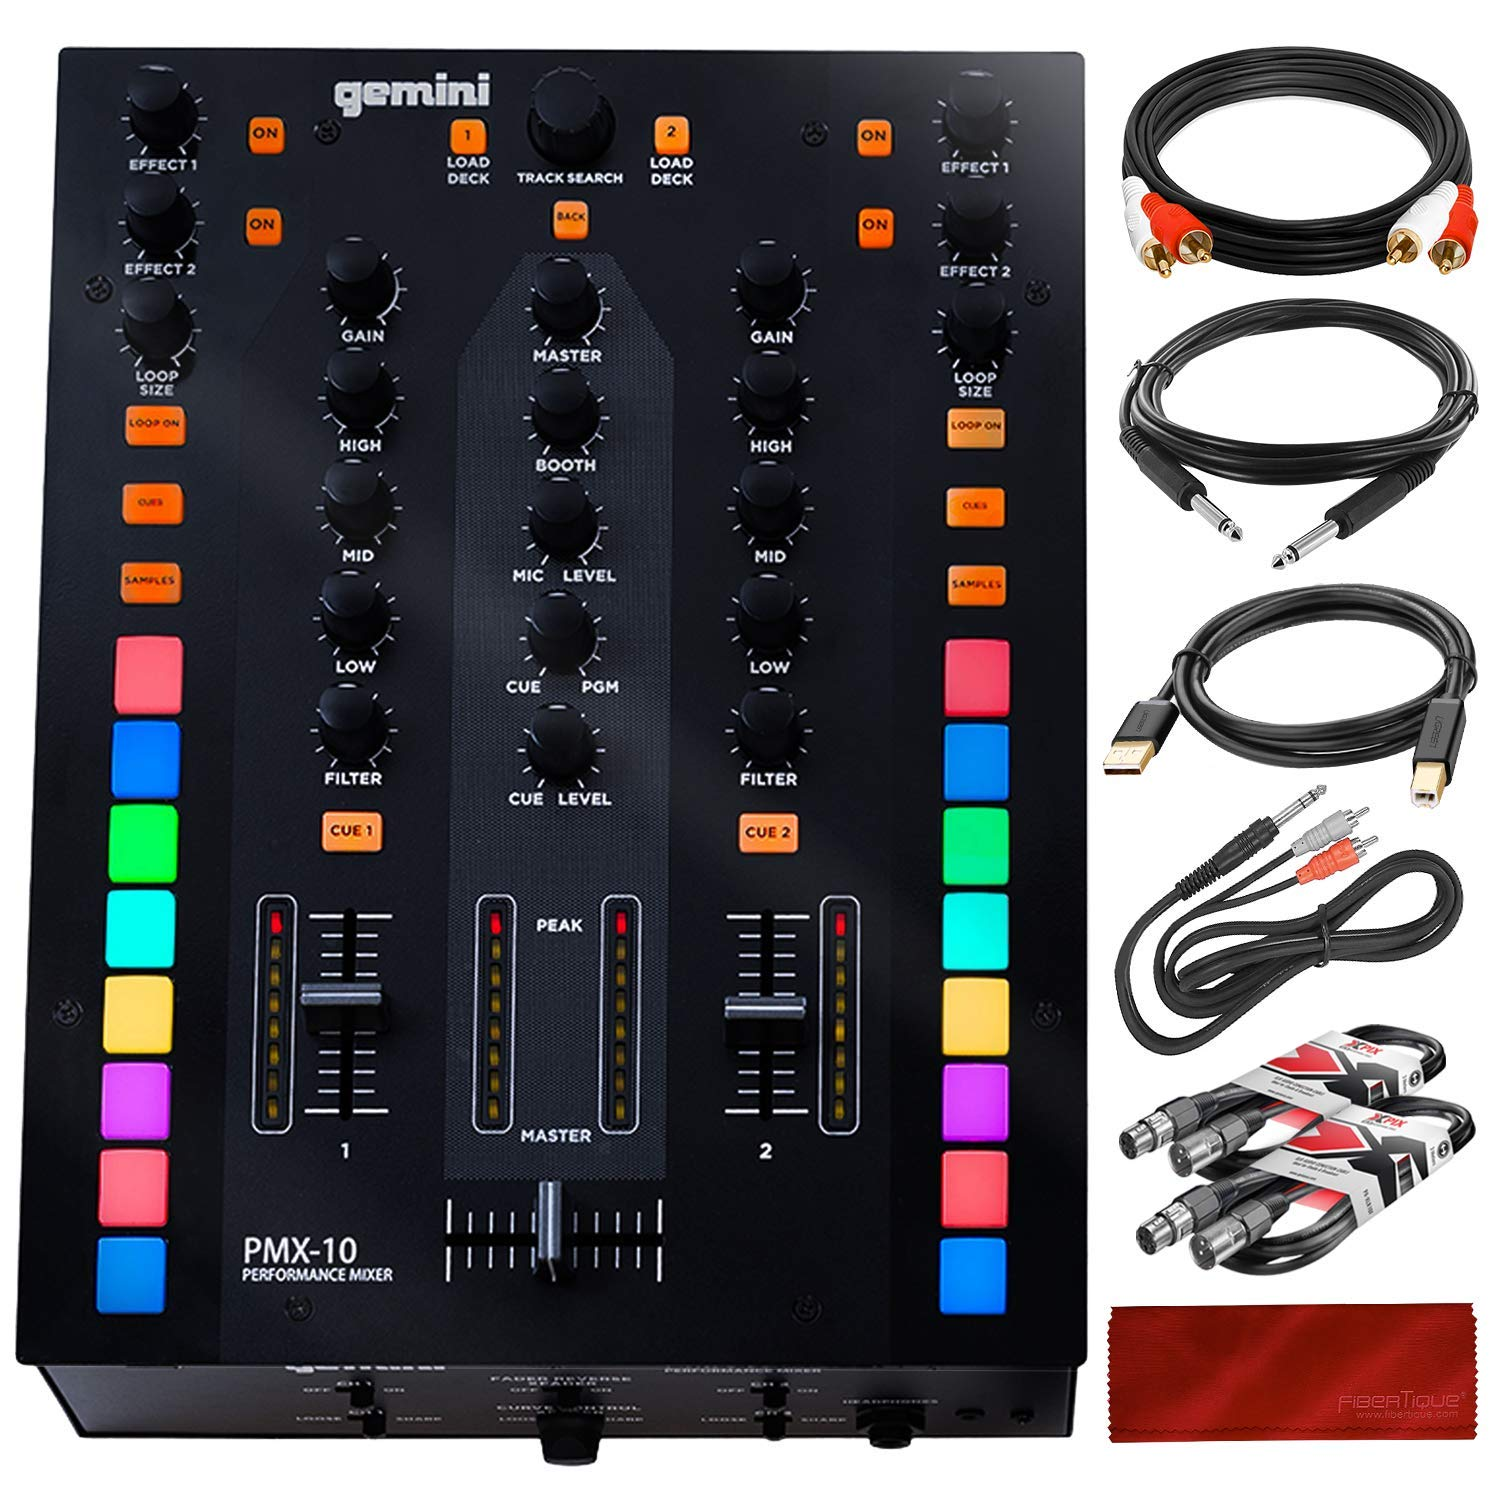 Gemini PMX-10 A- A-B Box/DJ Mixer with Assorted Cables Bundle by Gemini - PS